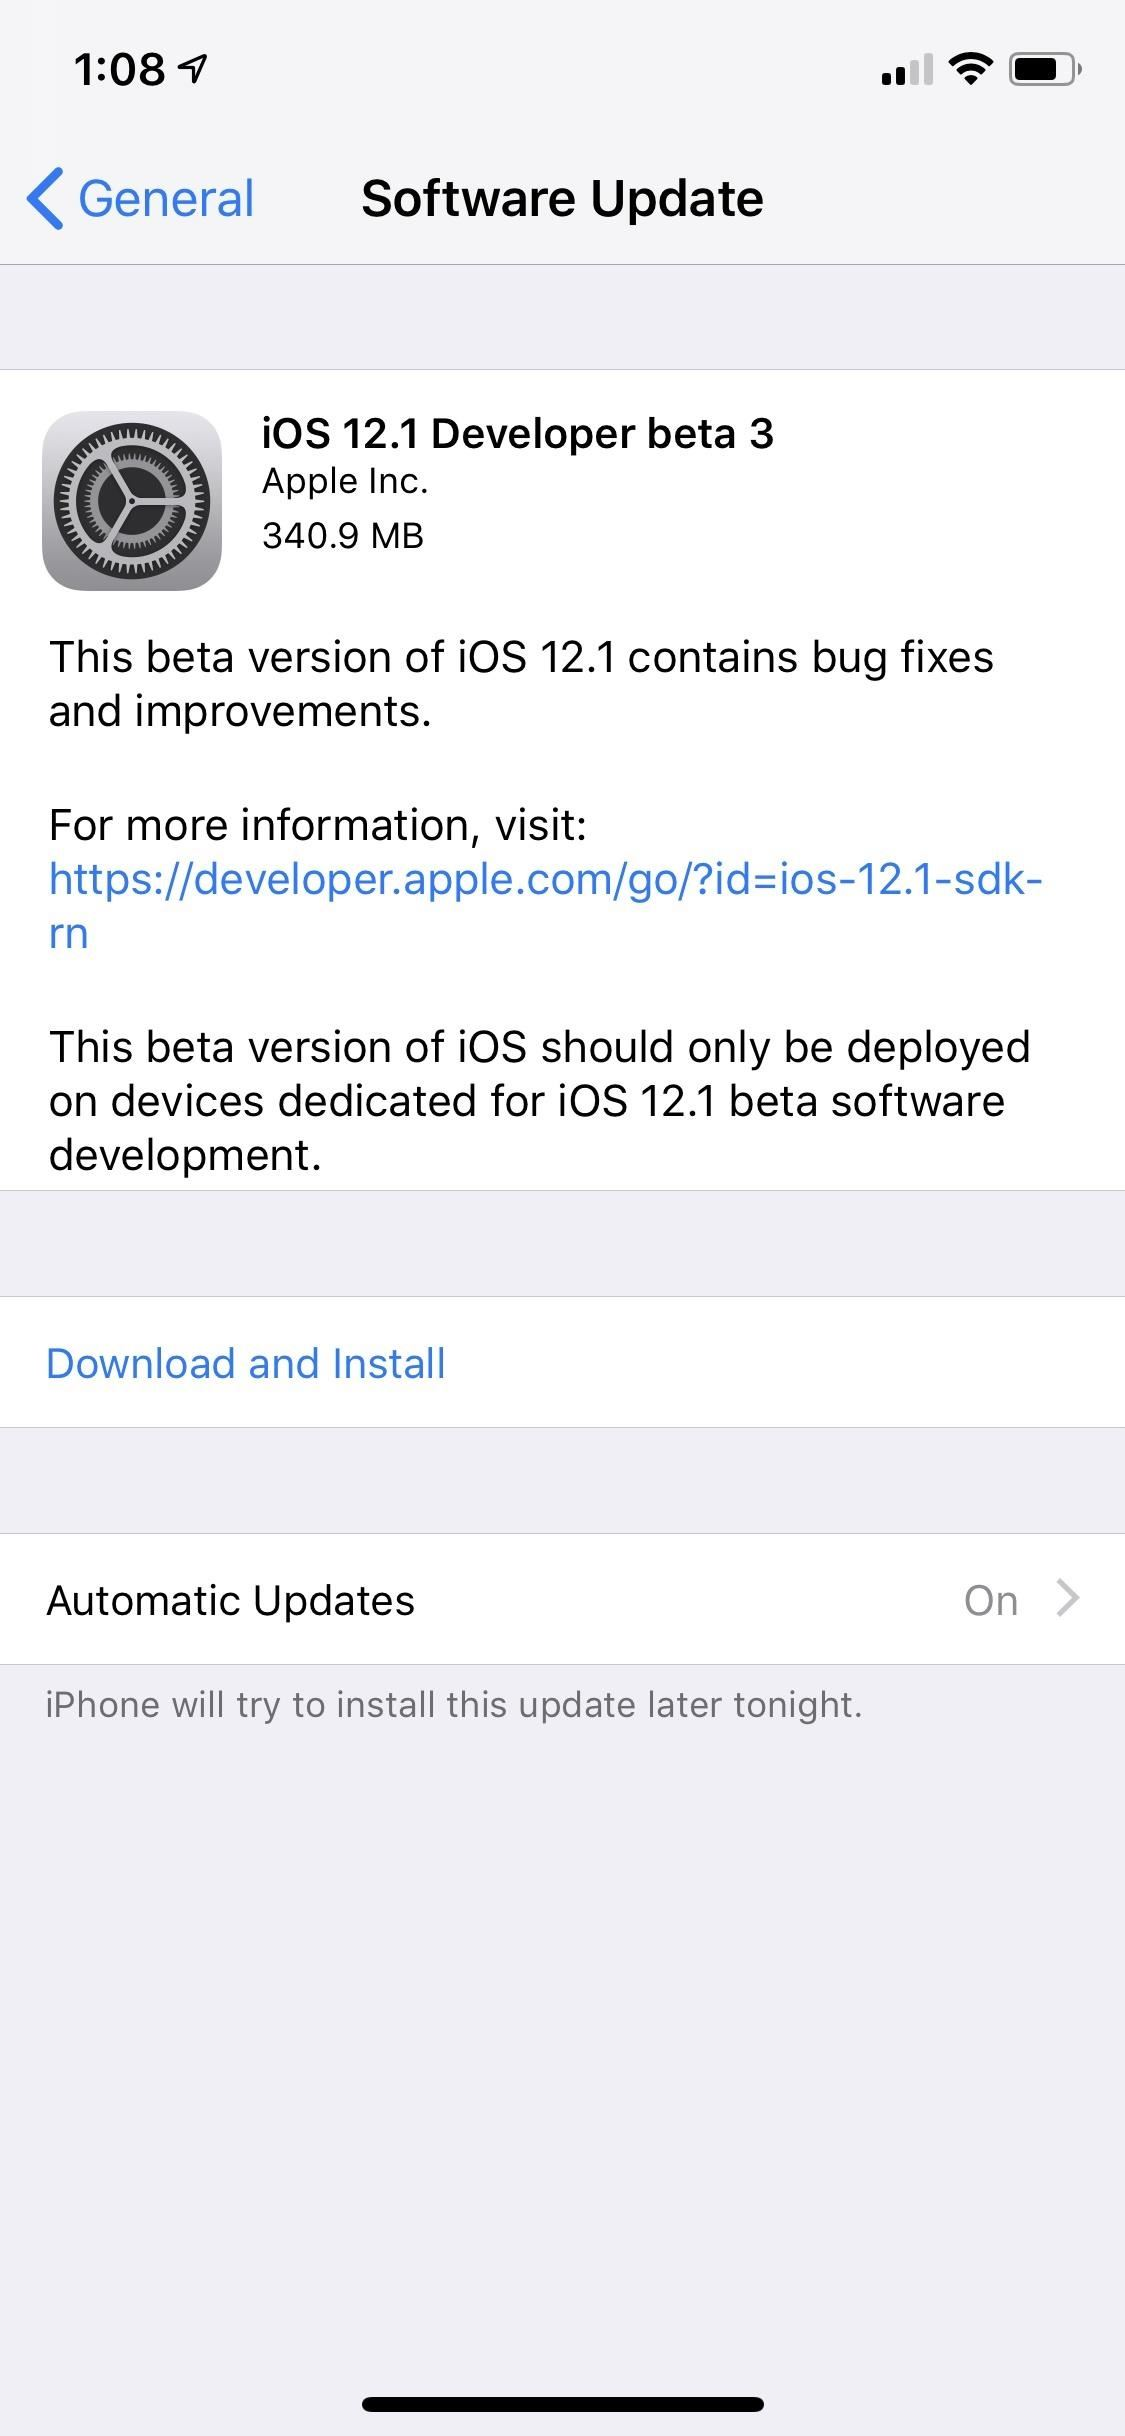 Apple Just Released iOS 12.1 Beta 3 to Developers